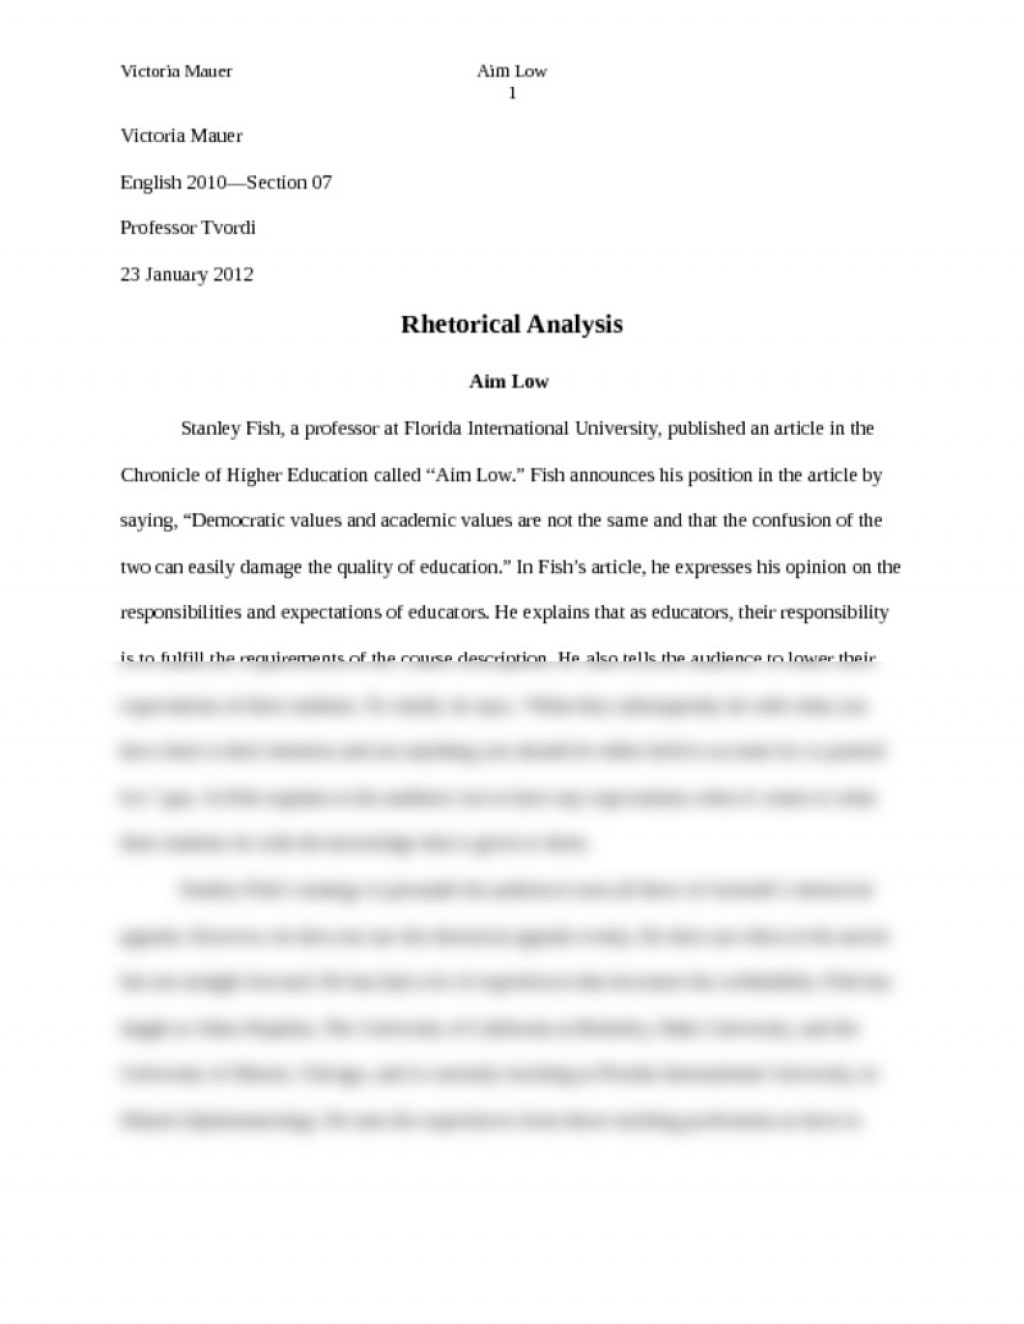 006 Essay Example What Is Rhetorical Frightening A Devices The Purpose Of Analysis Large